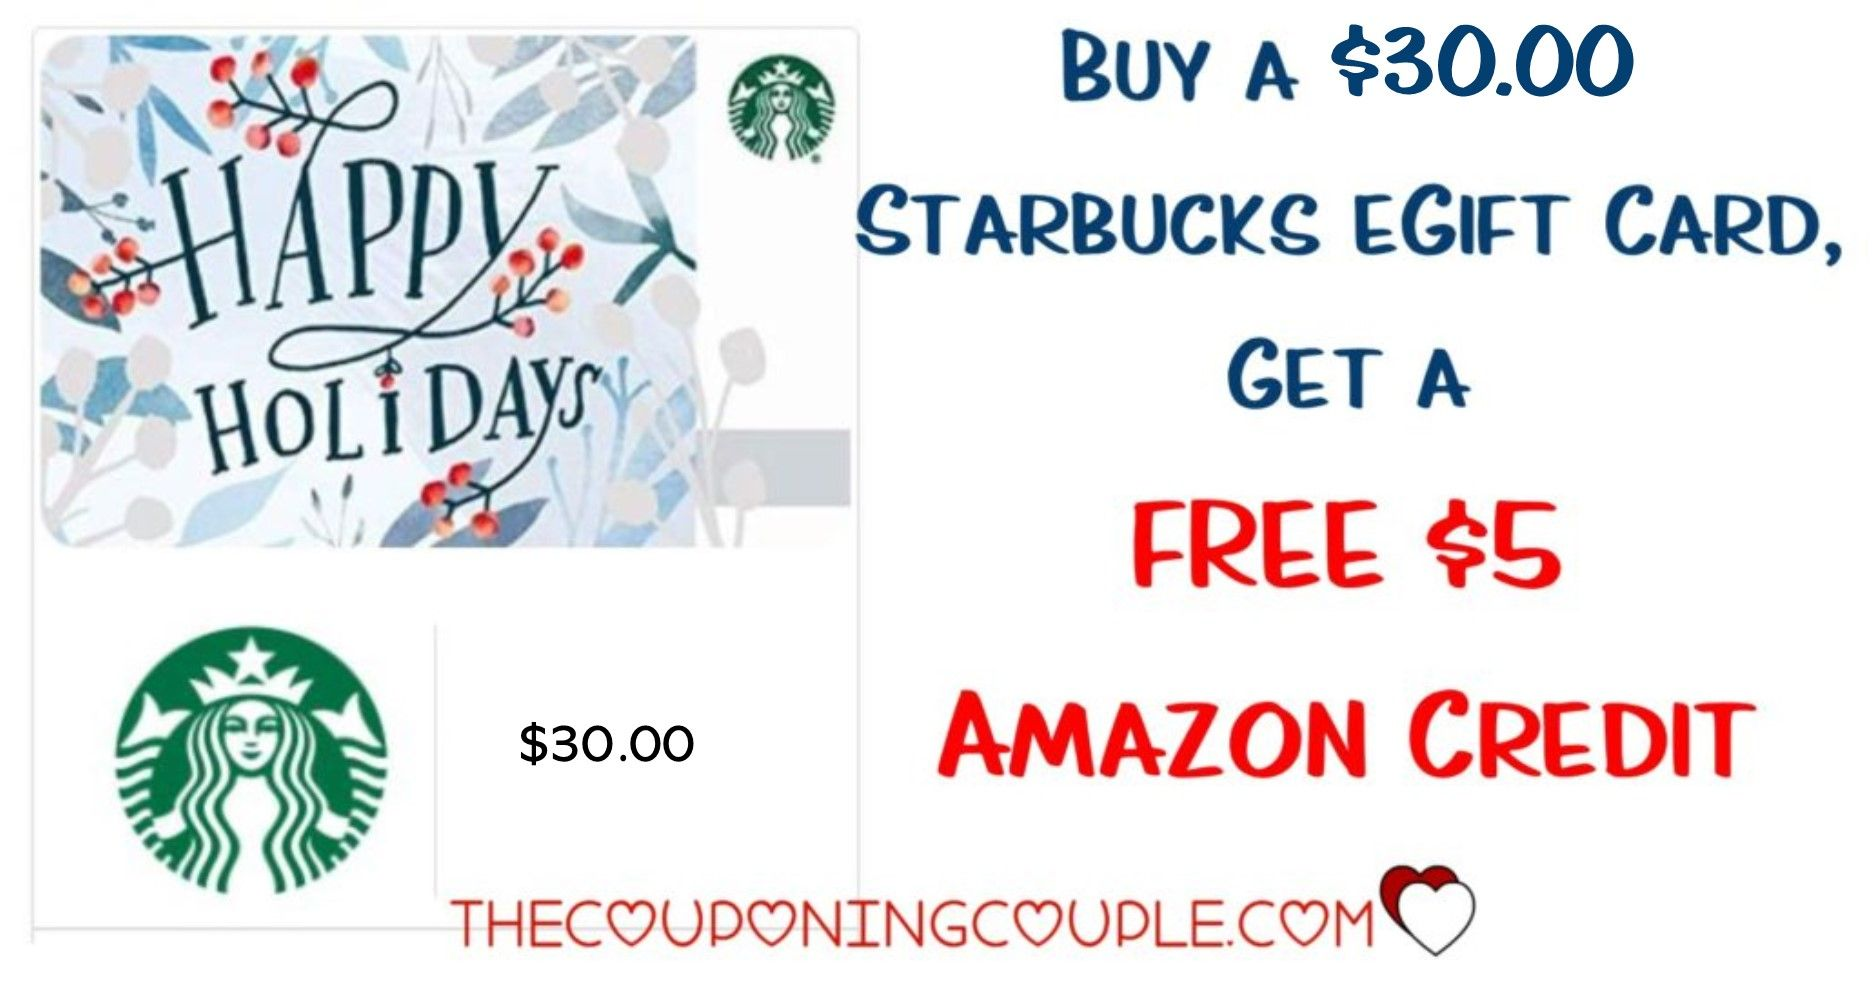 Photo of Buy a Starbucks Gift Card, Get FREE Amazon Credit!